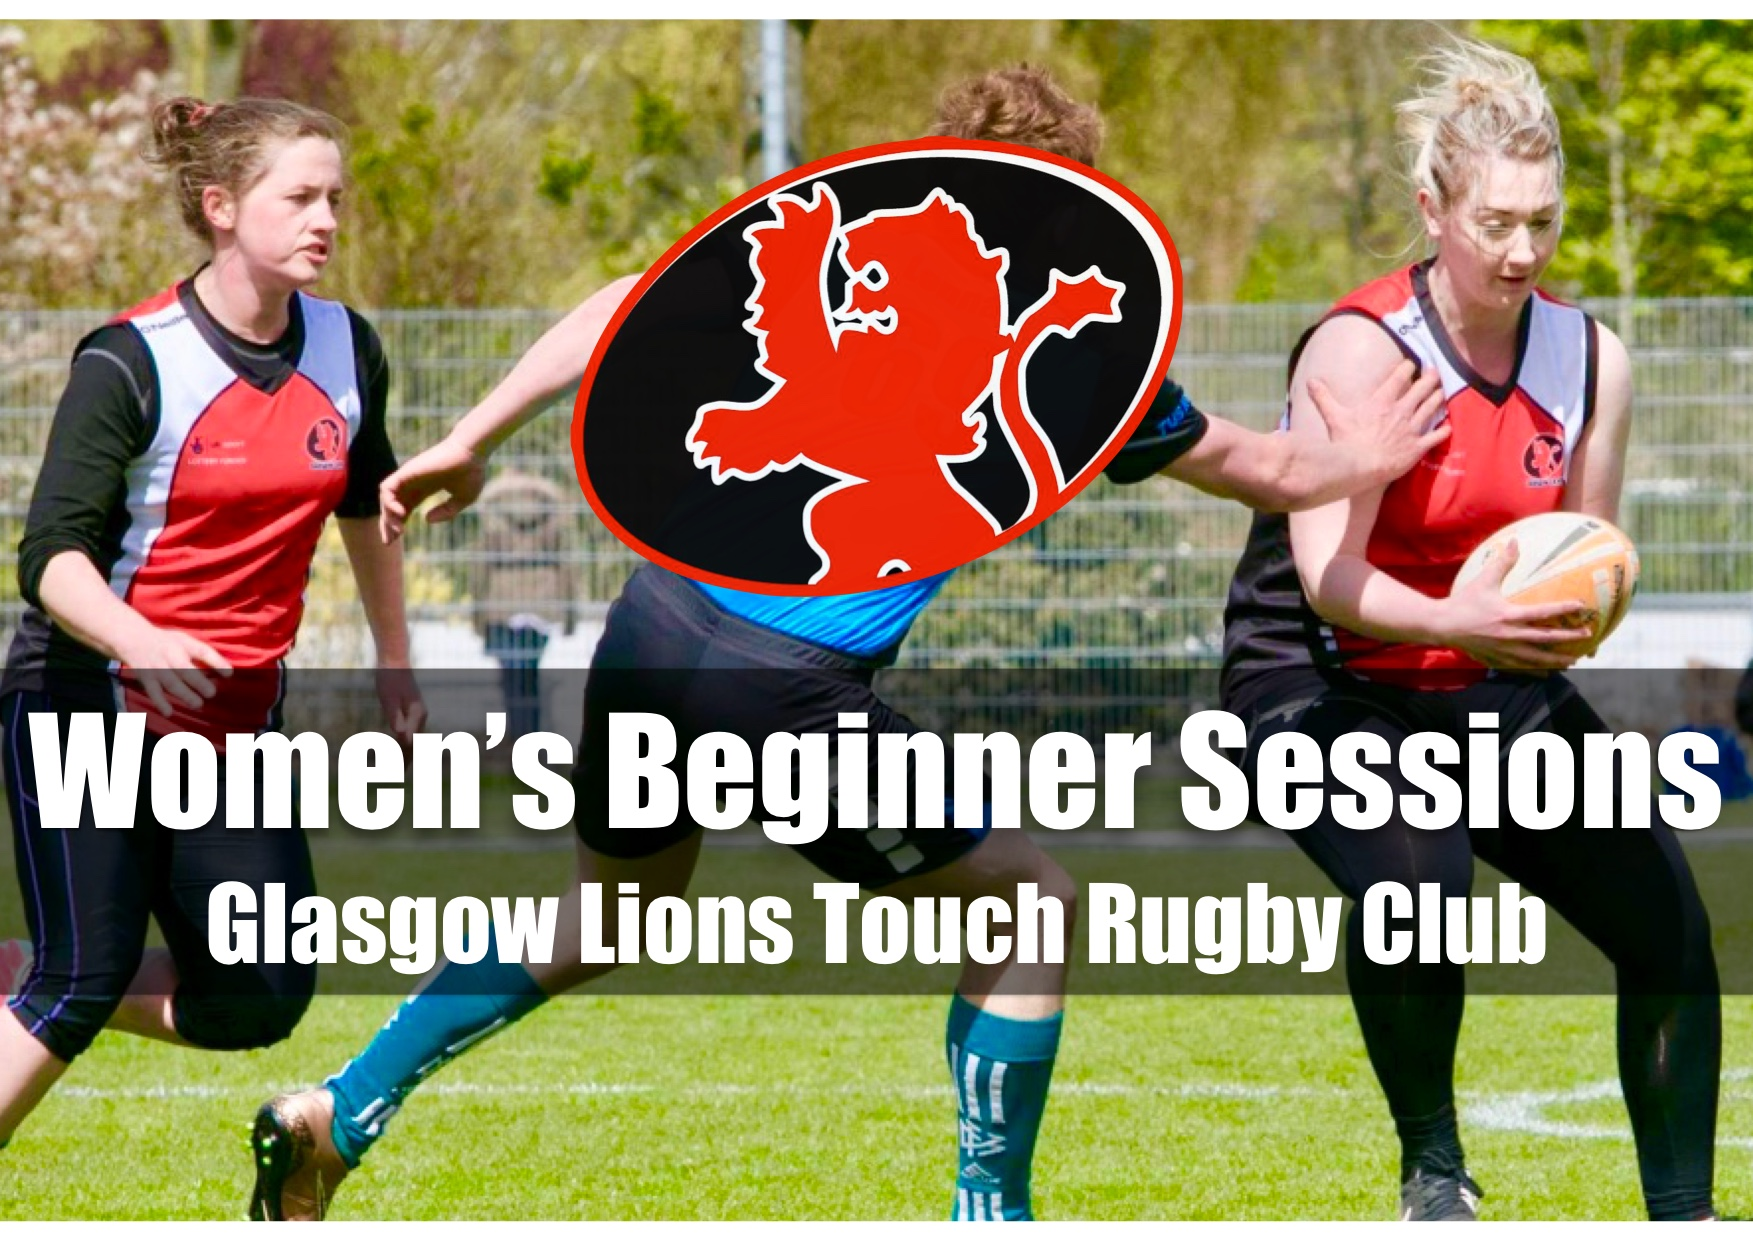 Women's Beginner Sessions